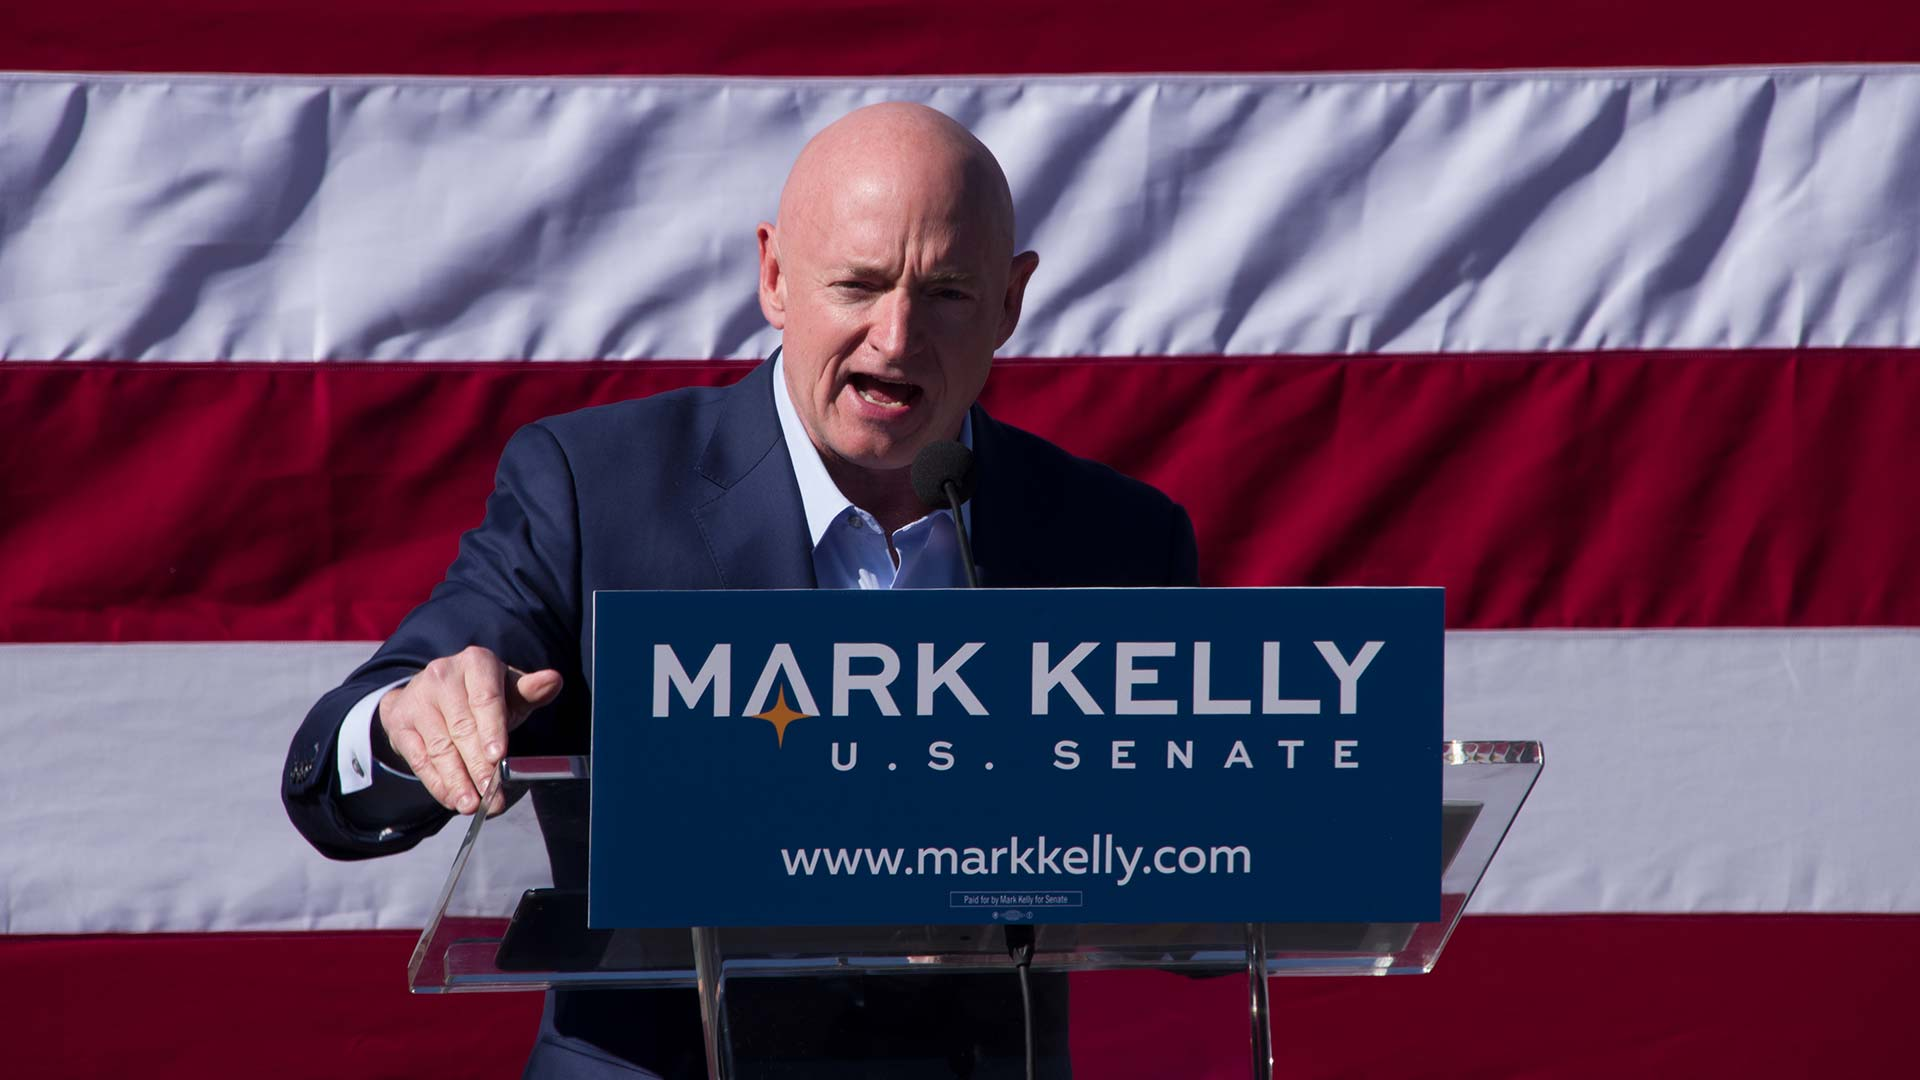 Mark Kelly Campaign HERO